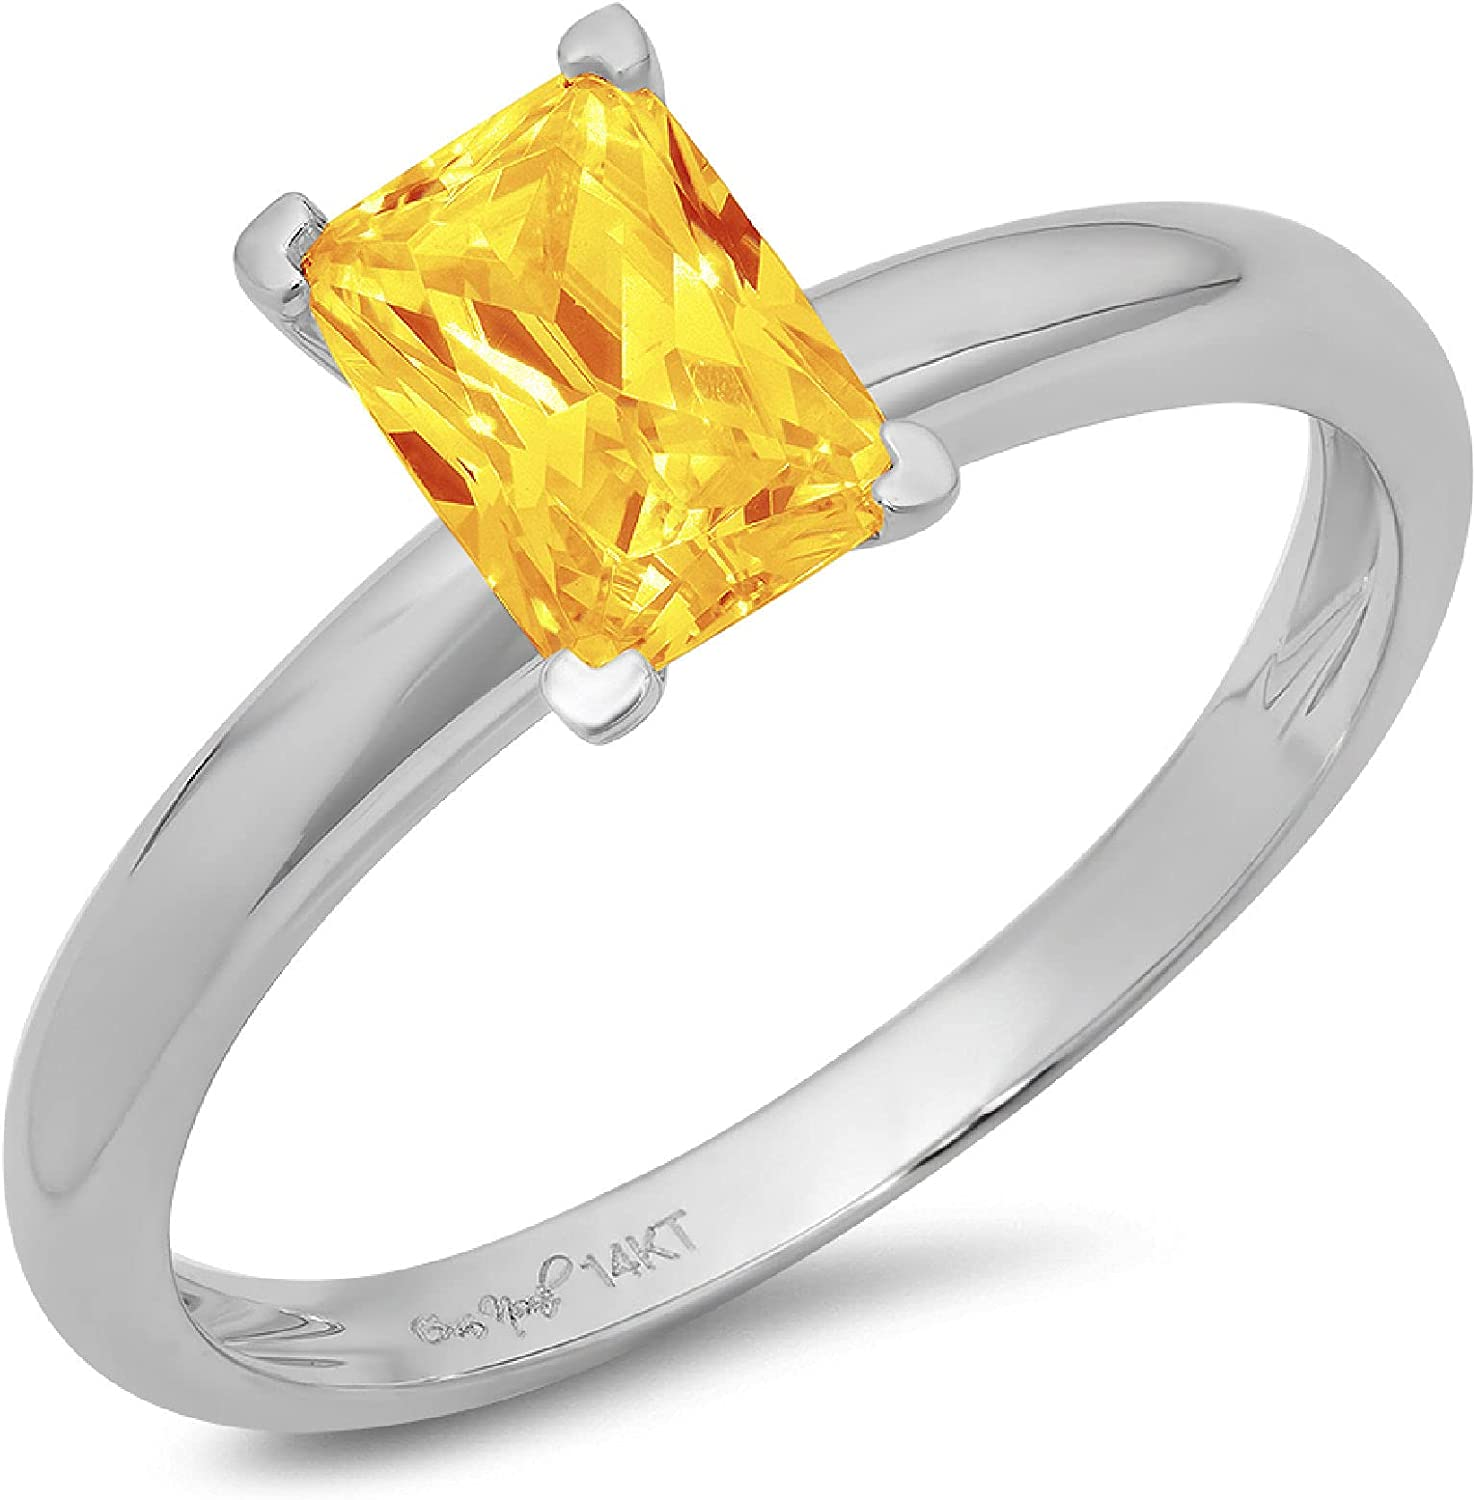 0.9ct Brilliant Emerald Cut Solitaire Natural Yellow Citrine Ideal VVS1 4-Prong Engagement Wedding Bridal Promise Anniversary Ring Solid 14k White Gold for Women